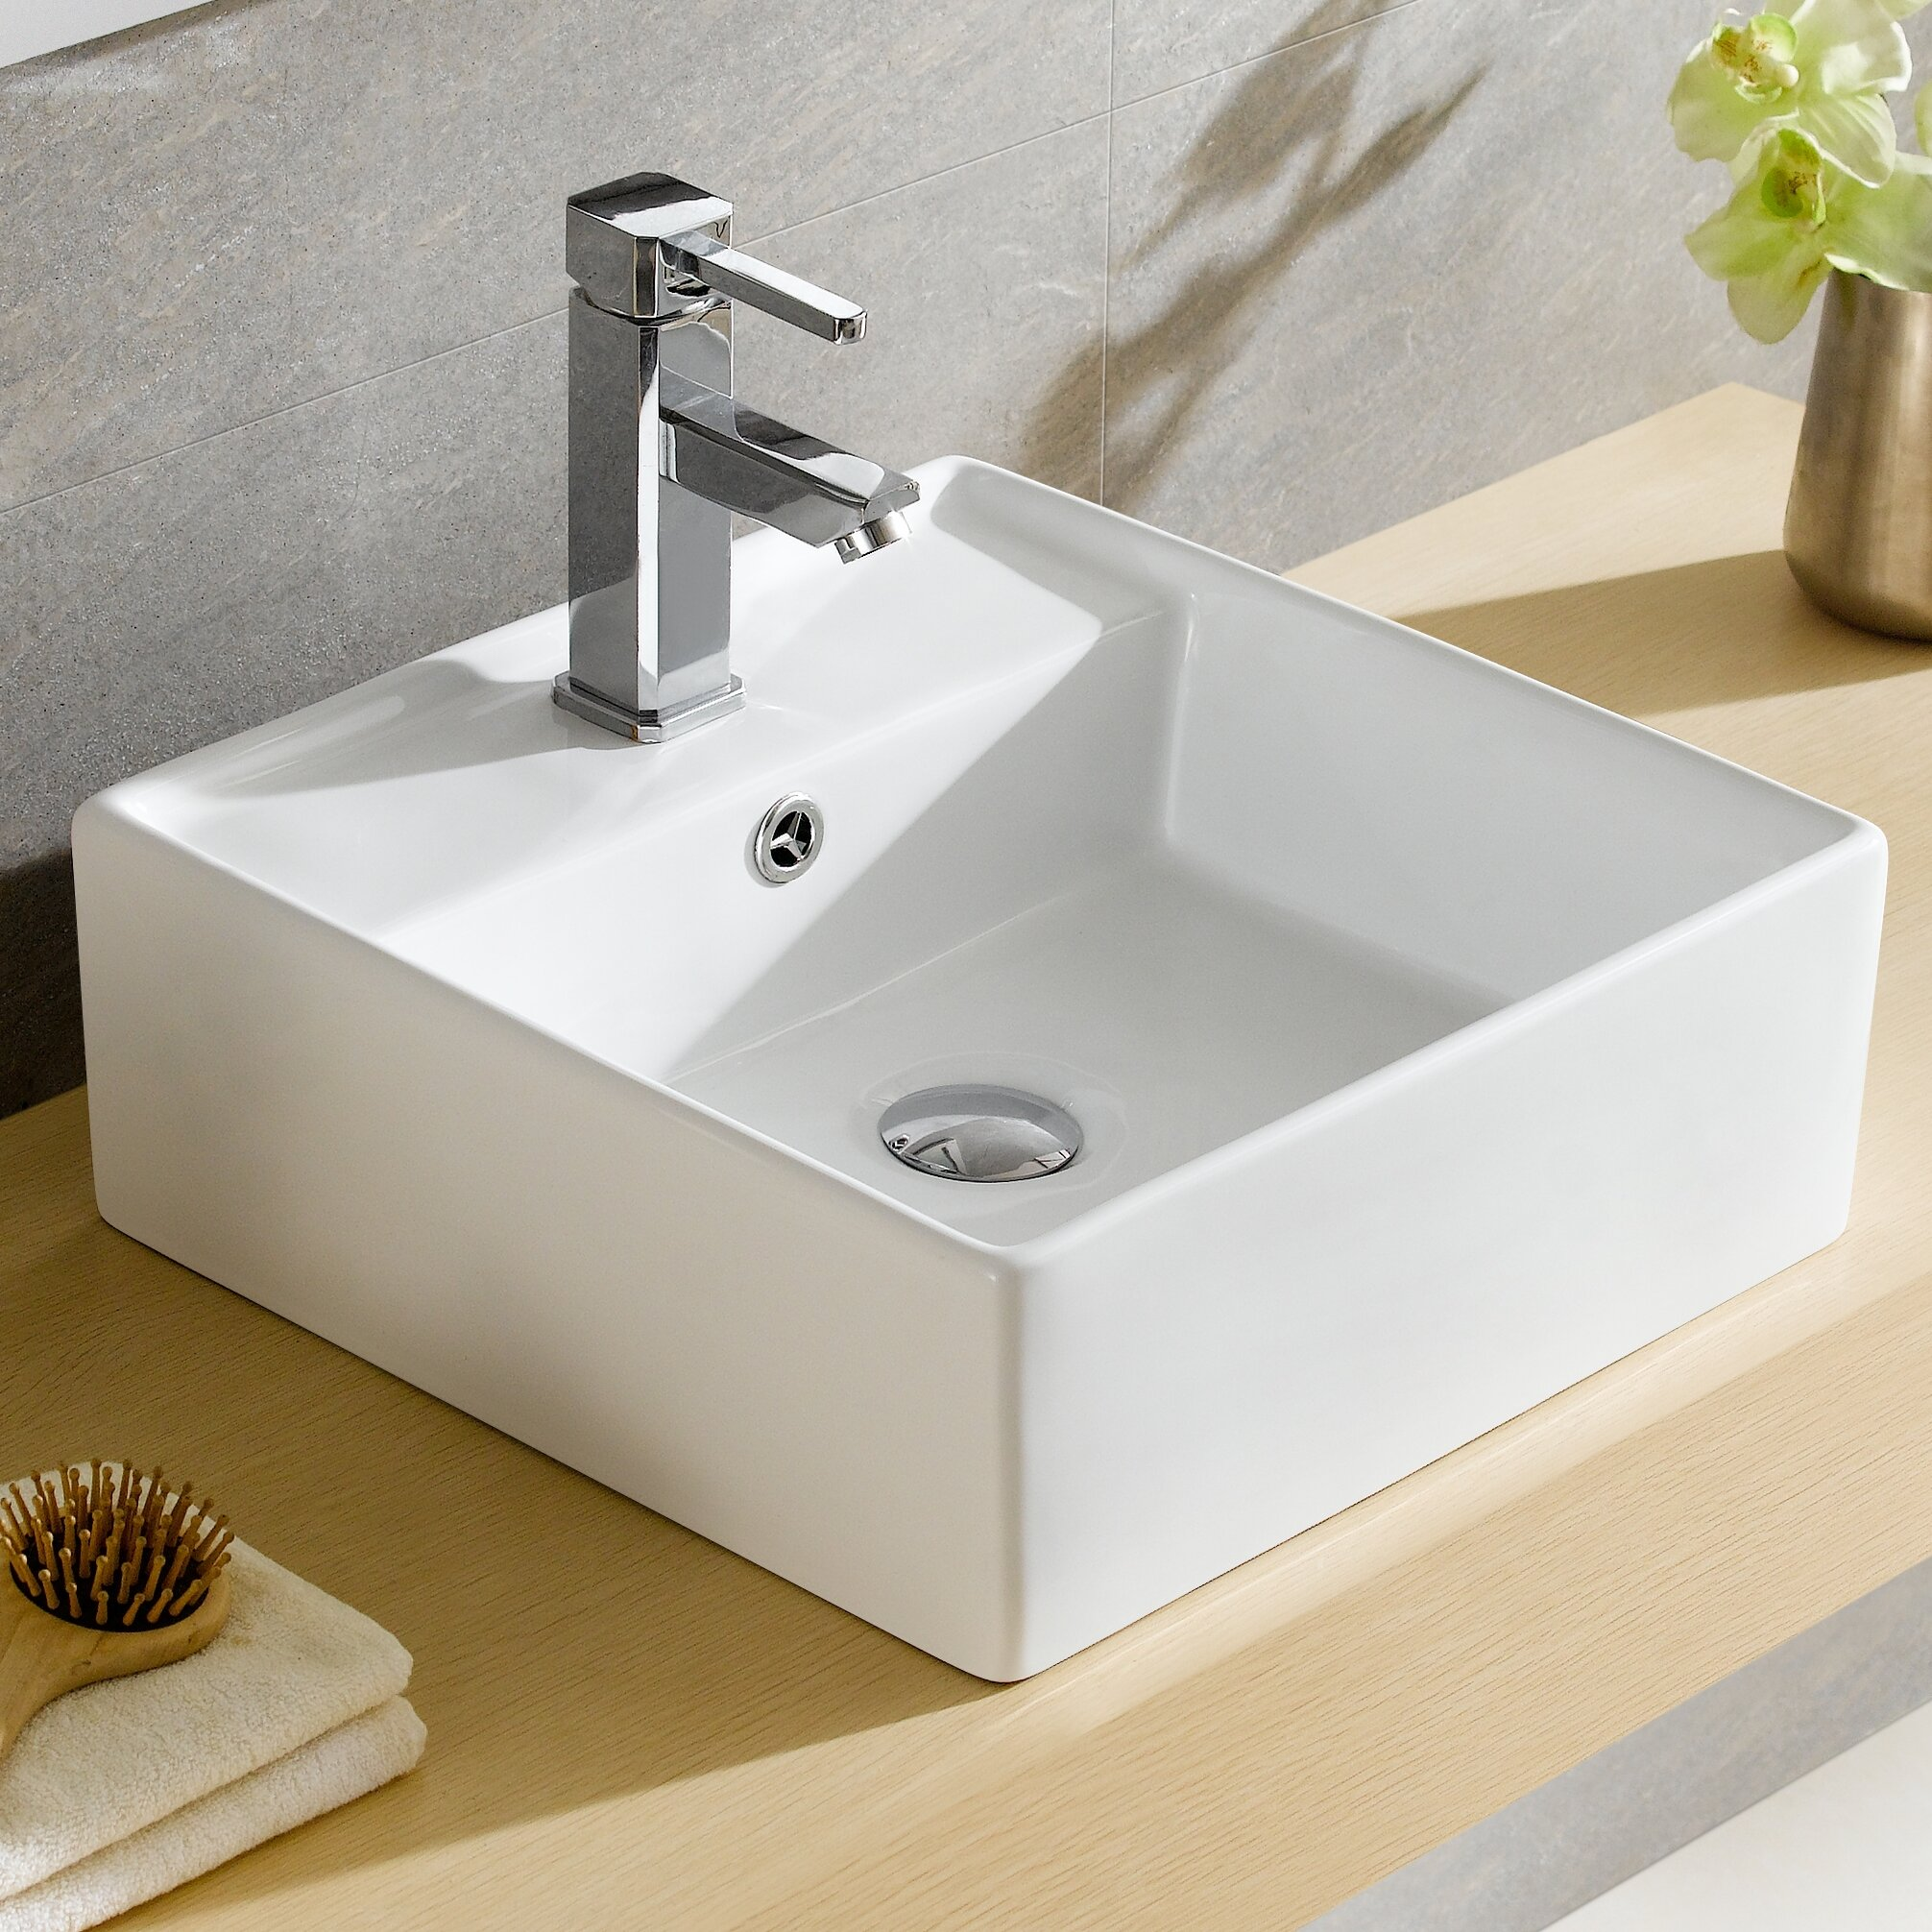 Merveilleux Modern Ceramic Square Vessel Bathroom Sink With Overflow